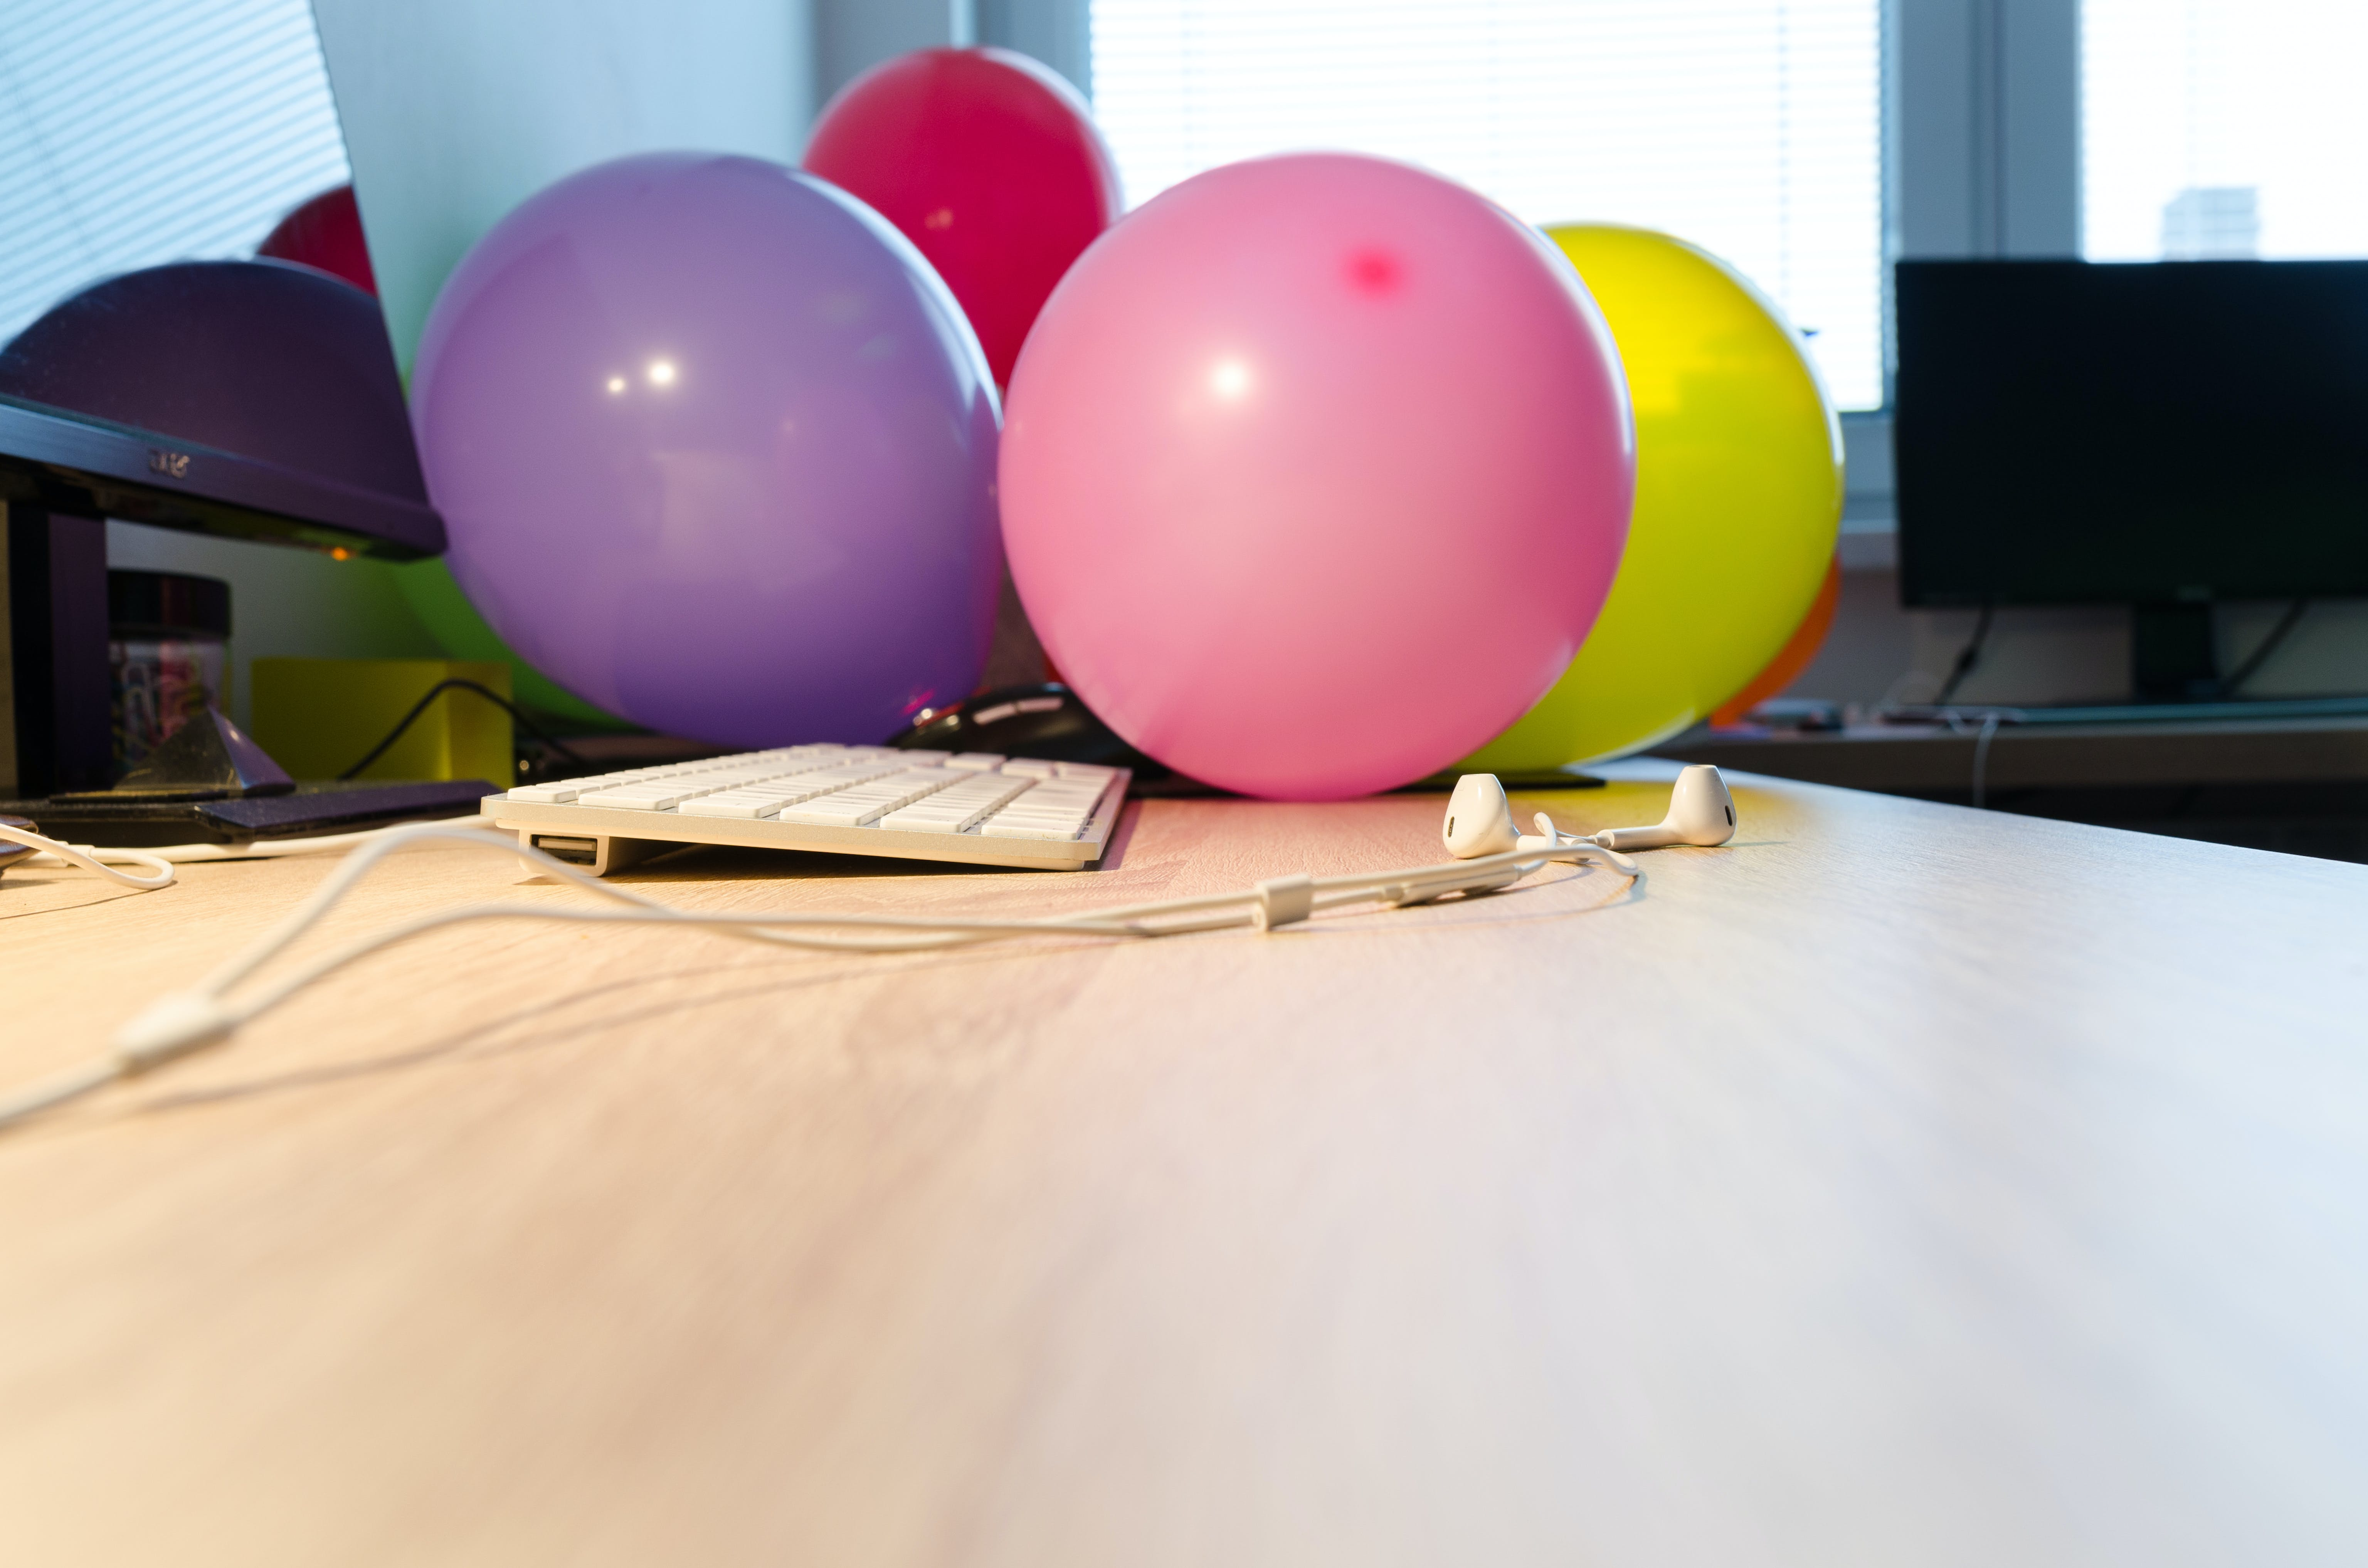 Assorted-color Balloons Near White Earpods